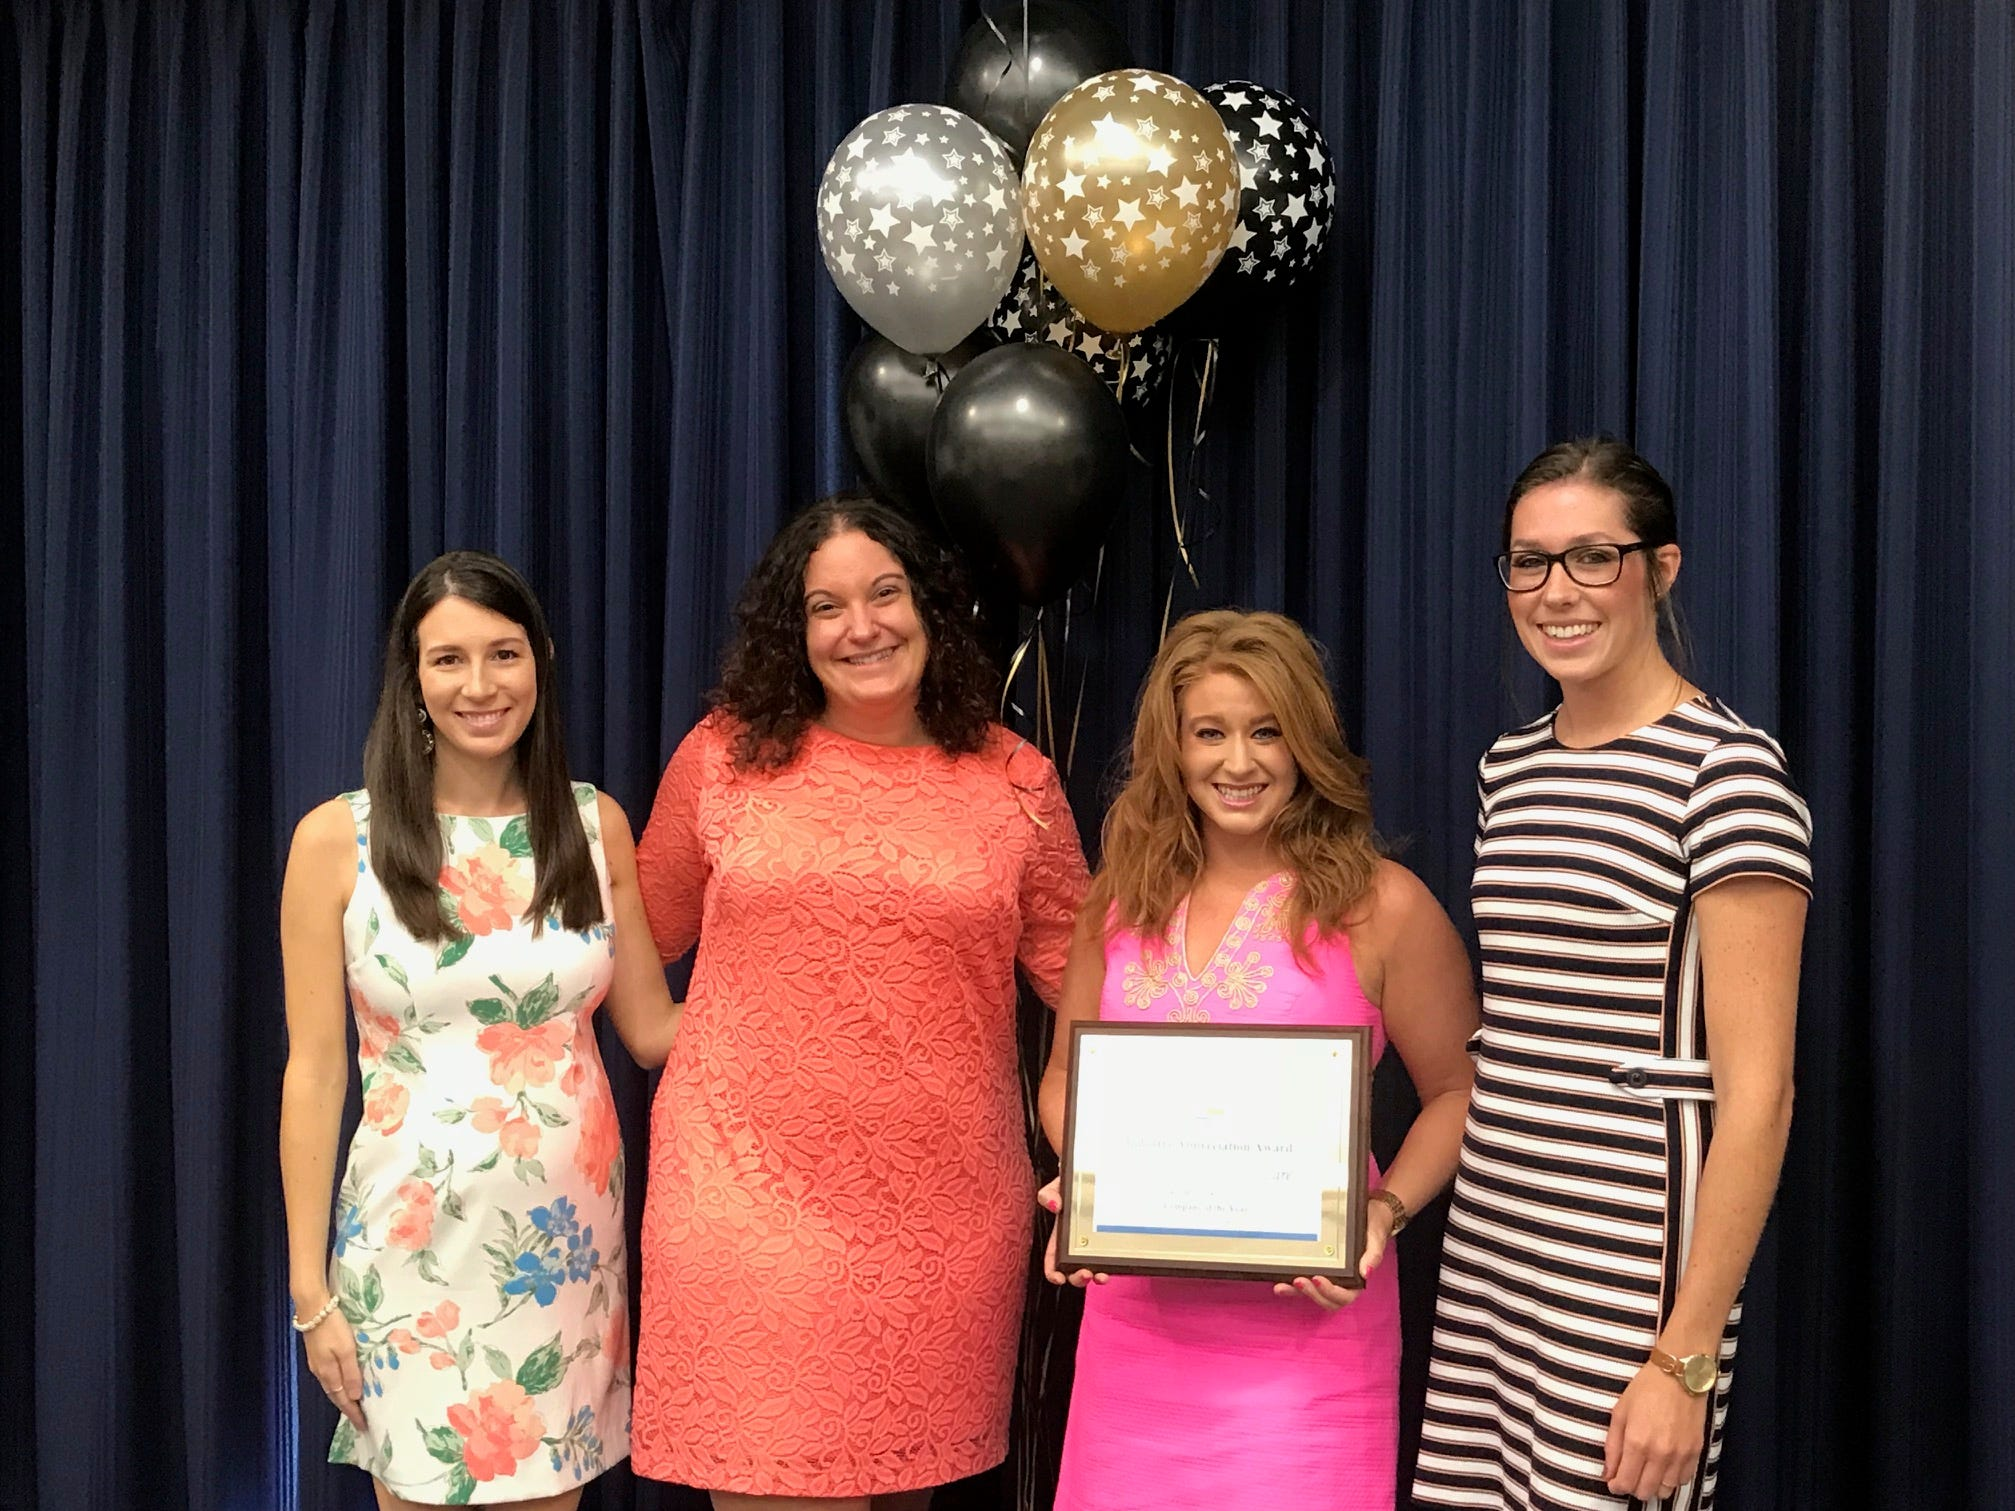 Home Instead Senior Care of Vero Beach was named Large Company of the Year -- Emily Hinson, Gina Derosa, Erica Vezza and Laura Gasbarrini